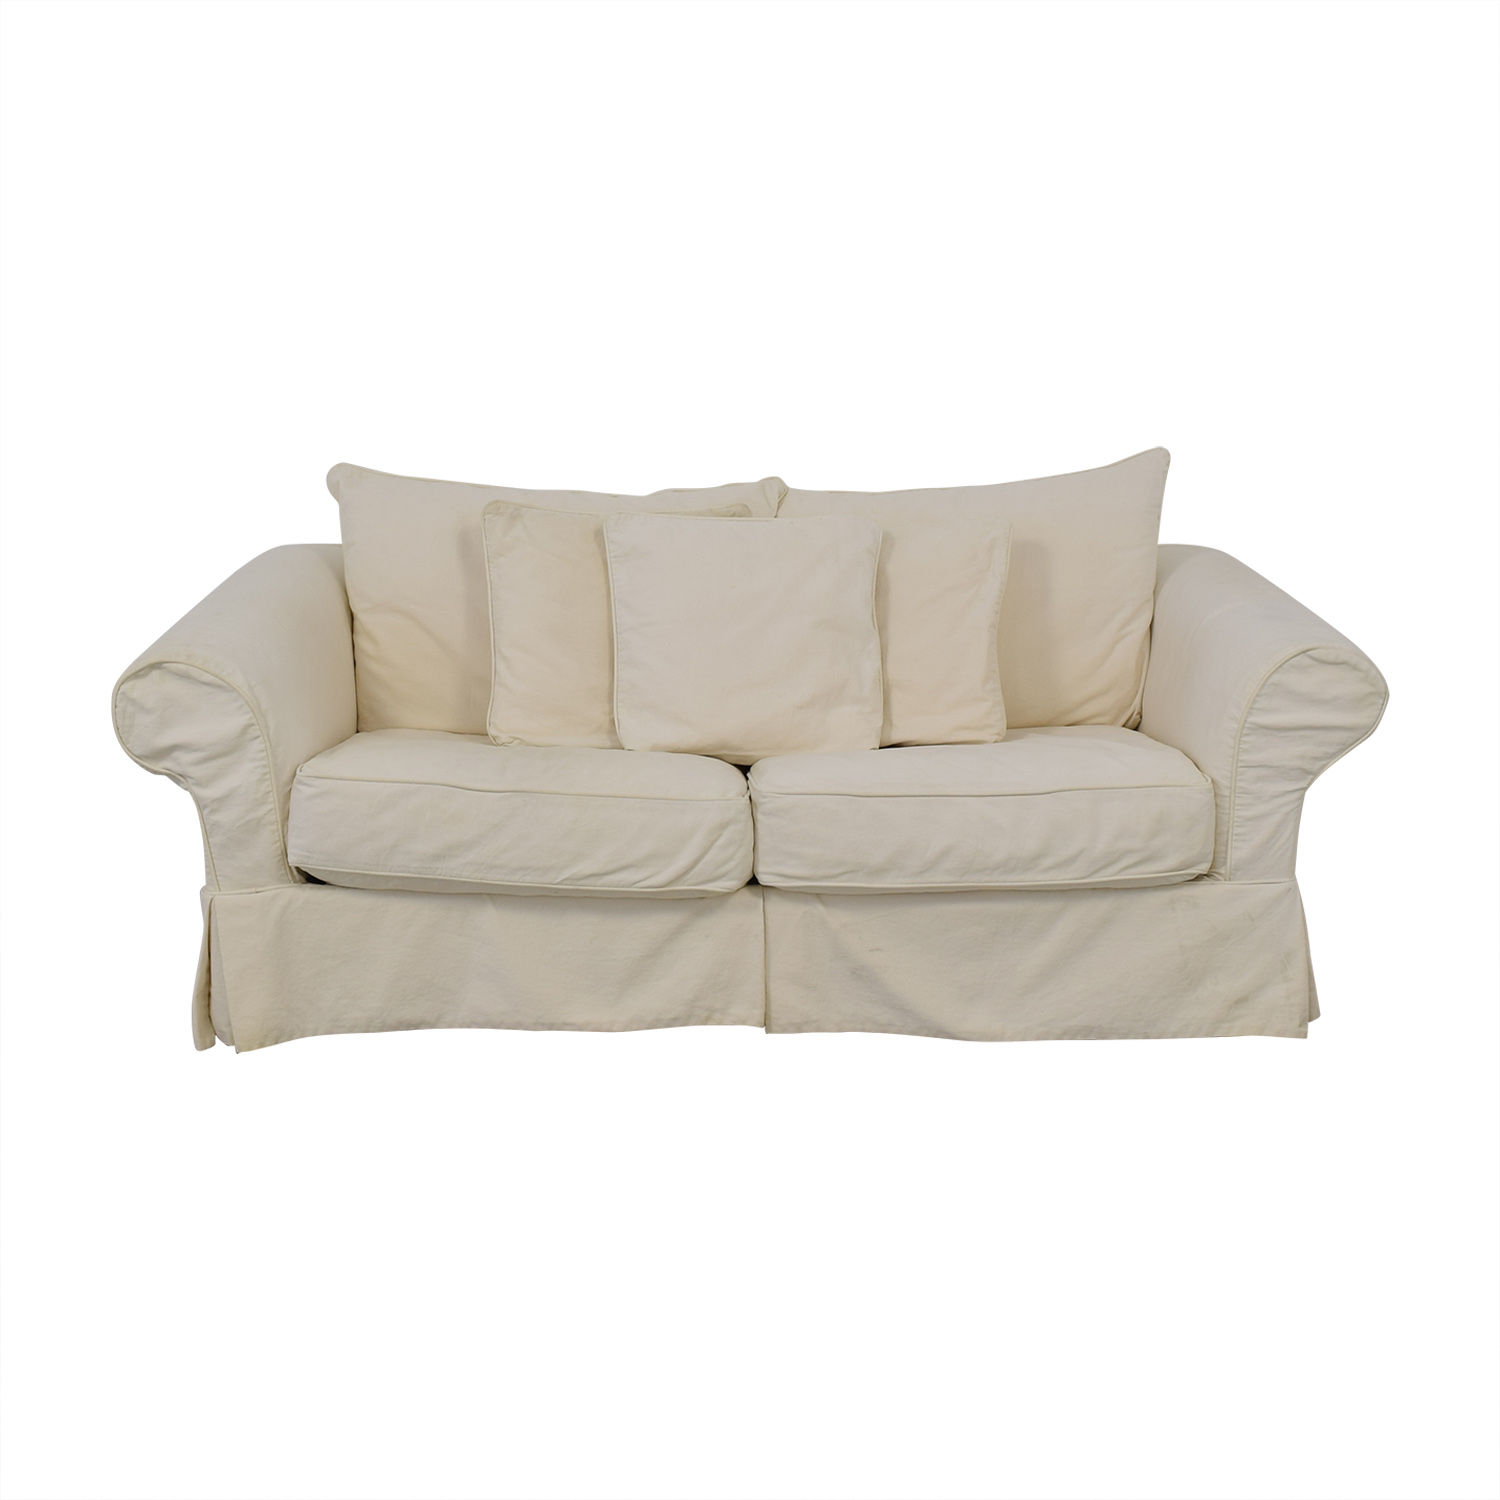 Slipcovered Sleeper Sofa Off White